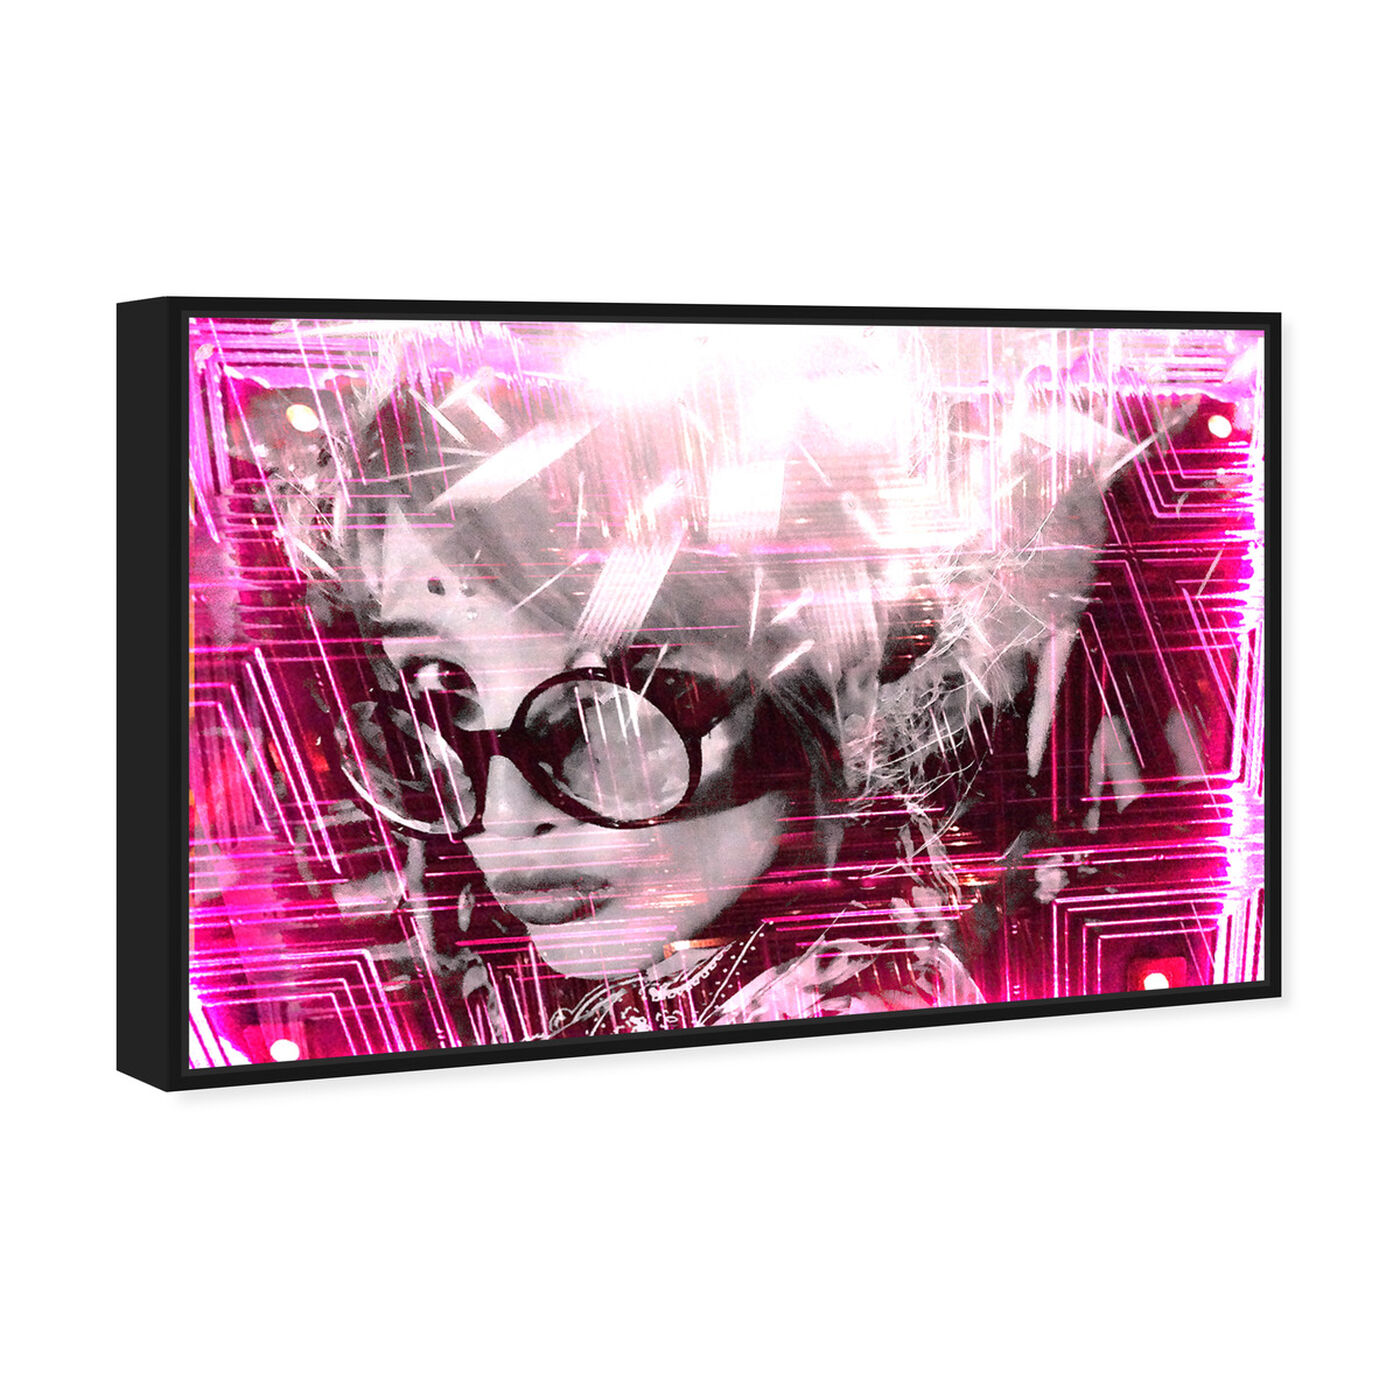 Angled view of Curro Cardenal - Pink neon featuring people and portraits and portraits art.